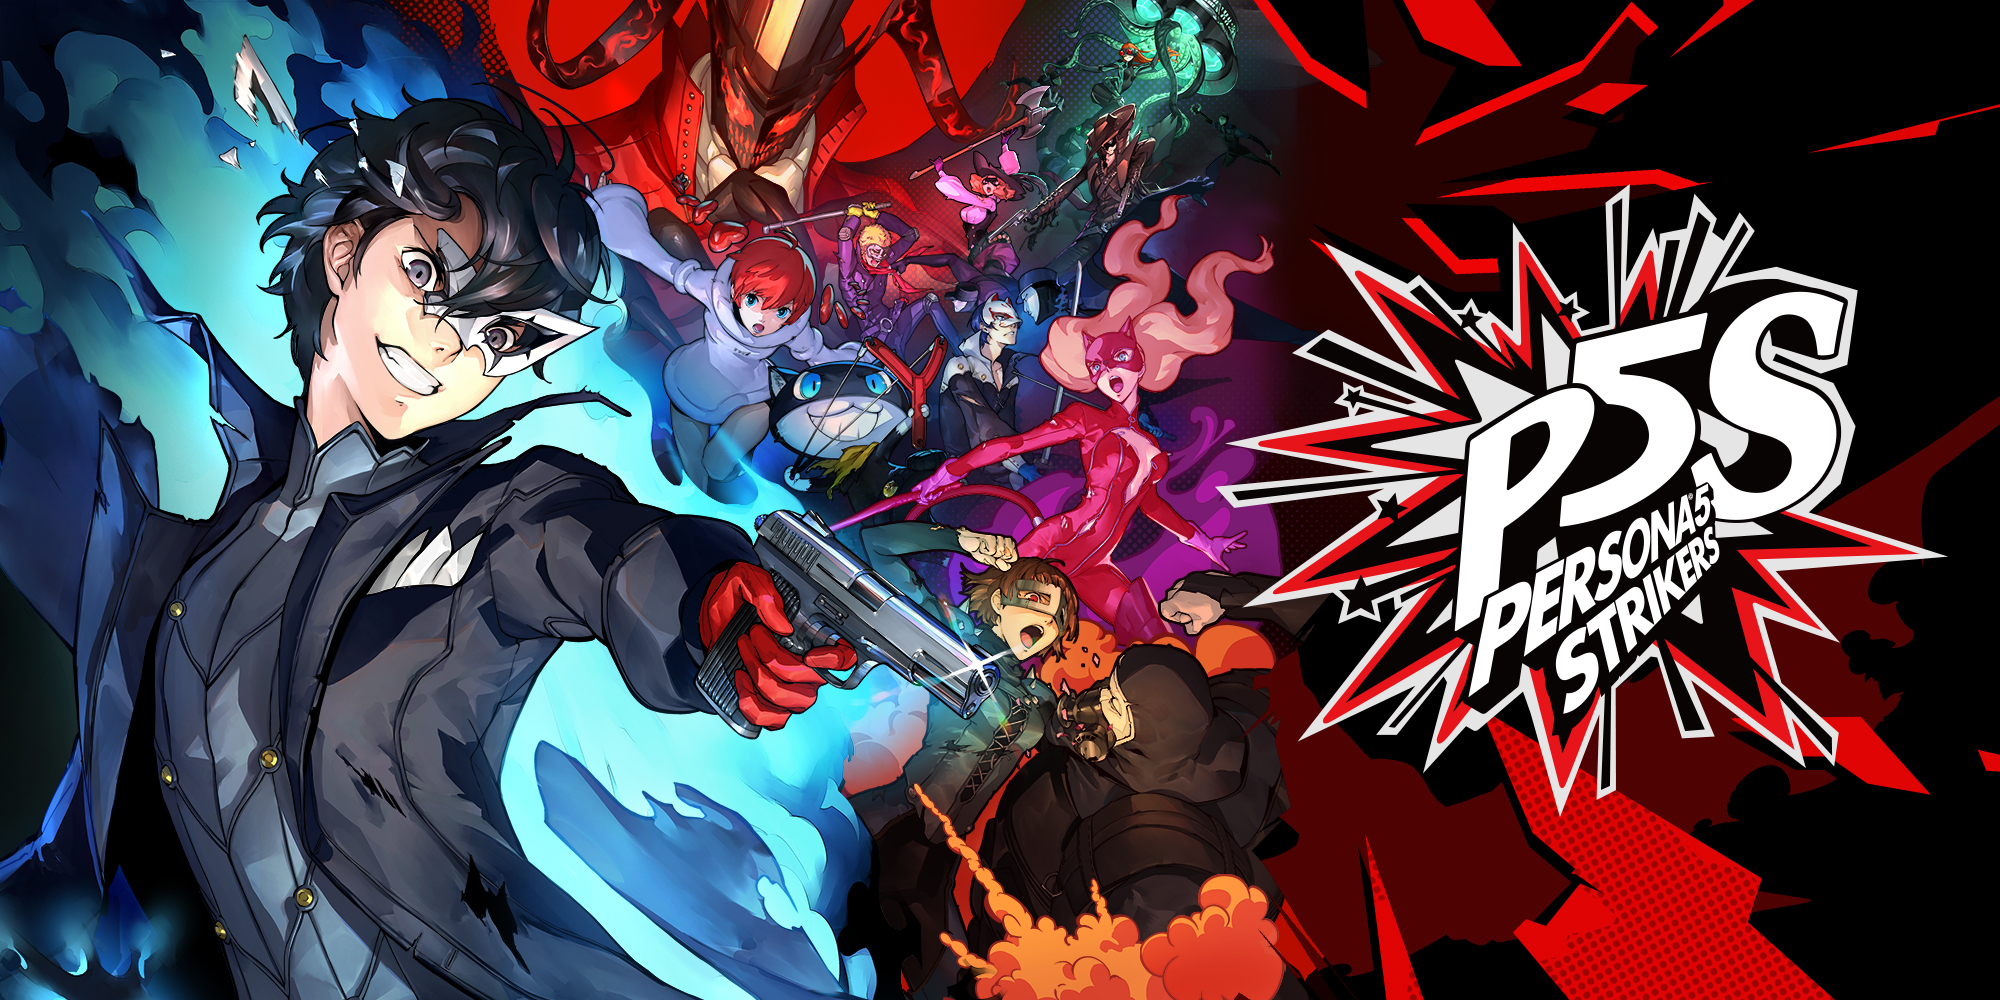 Persona 5 Strikers Walkthrough and Guide